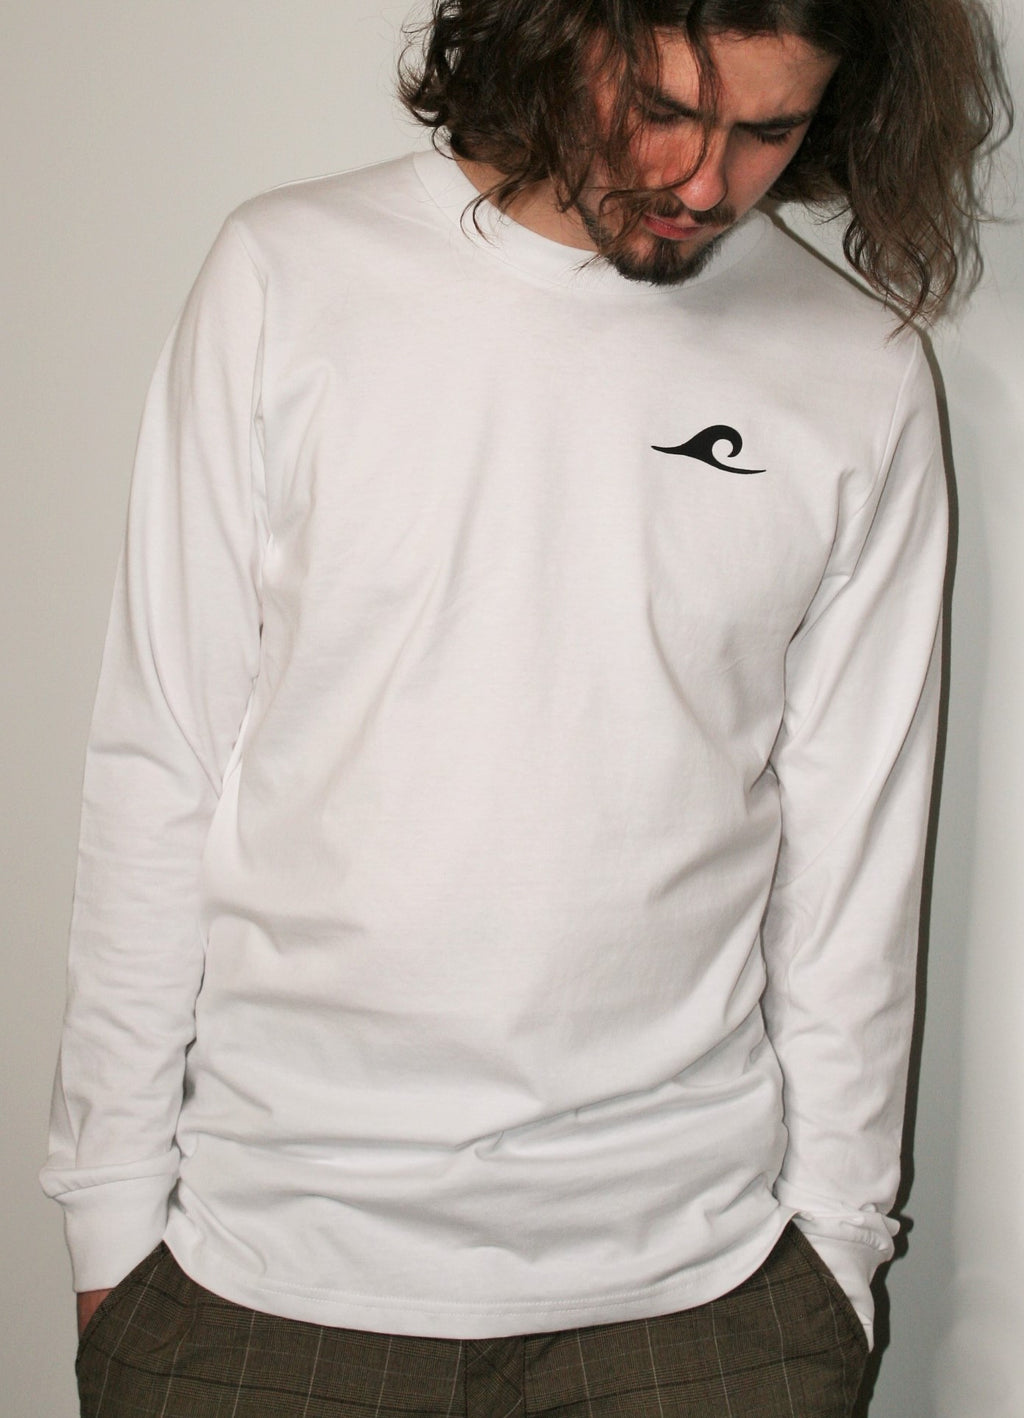 Free as Ocean White Long Sleeve White